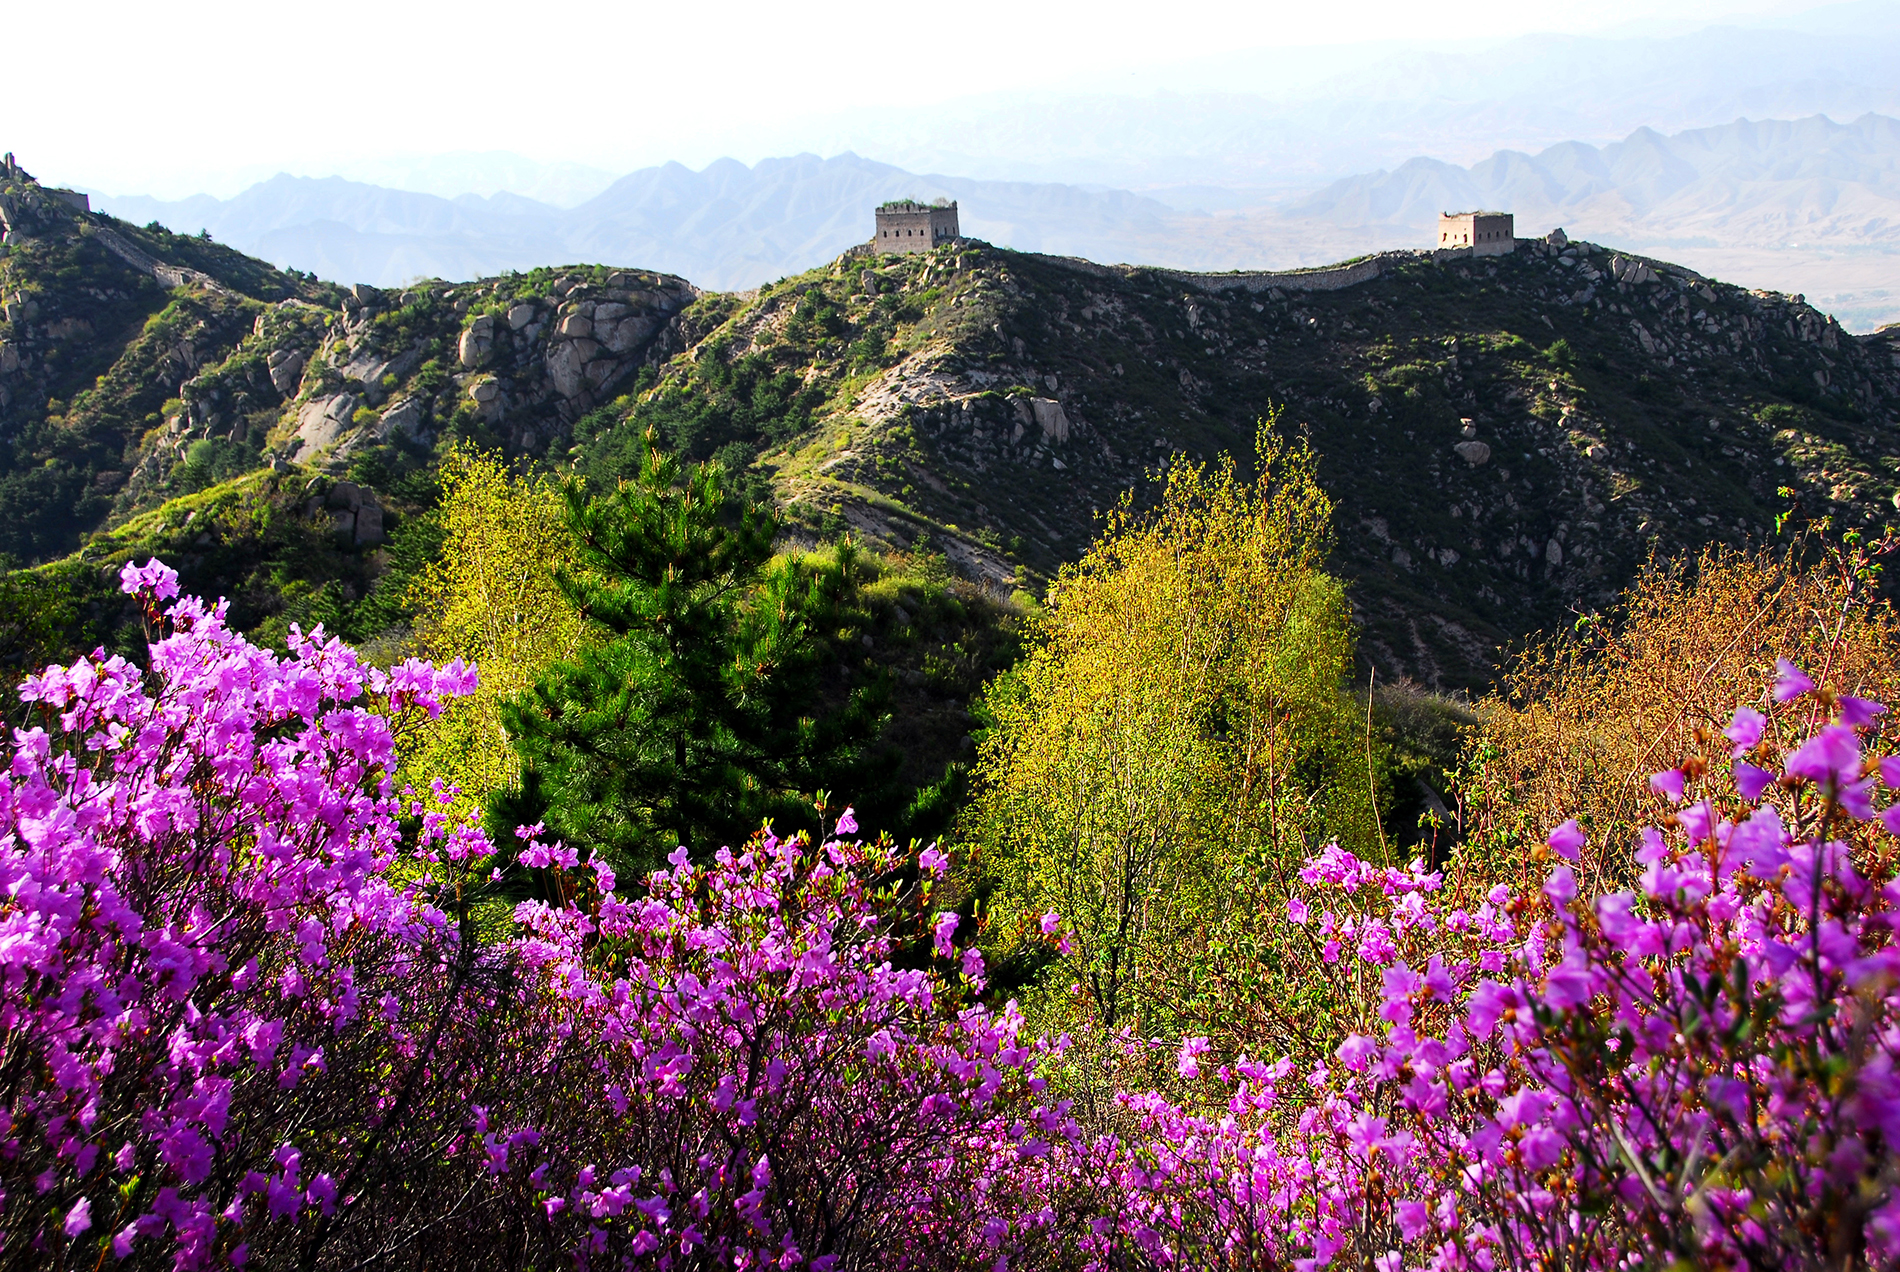 Laiyuan batholith, the great wall and the beautiful flower 53539